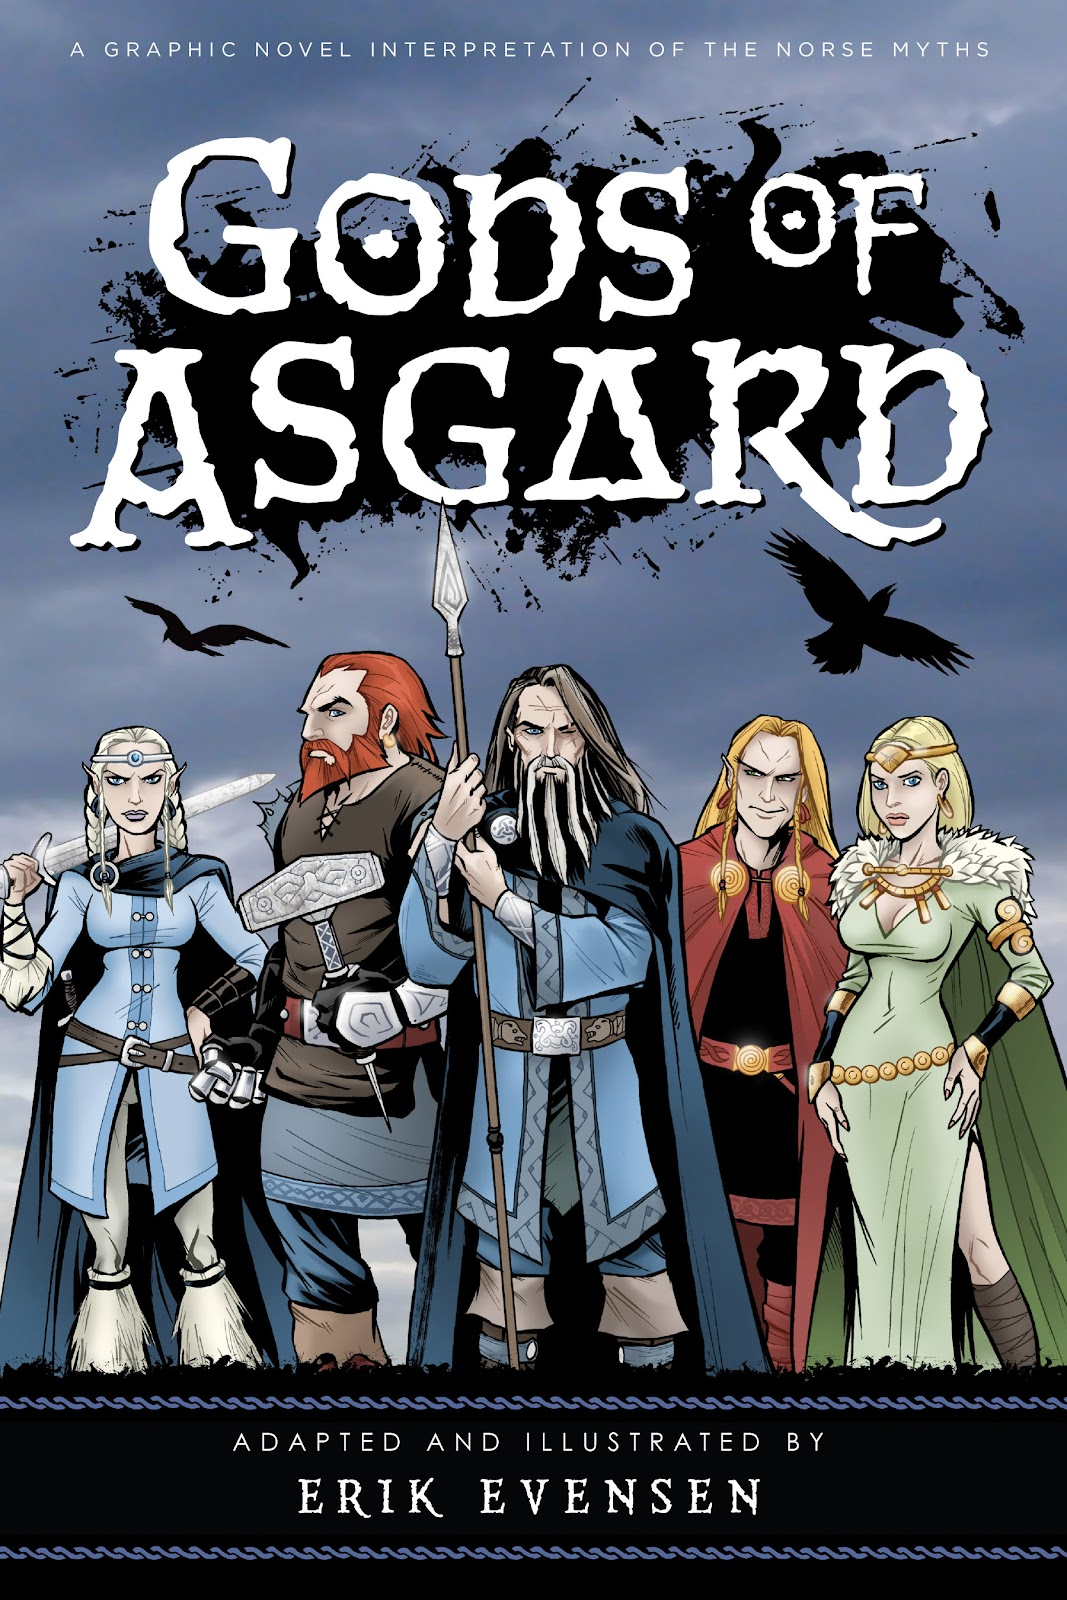 Read online Gods of Asgard comic -  Issue # TPB (Part 1) - 1